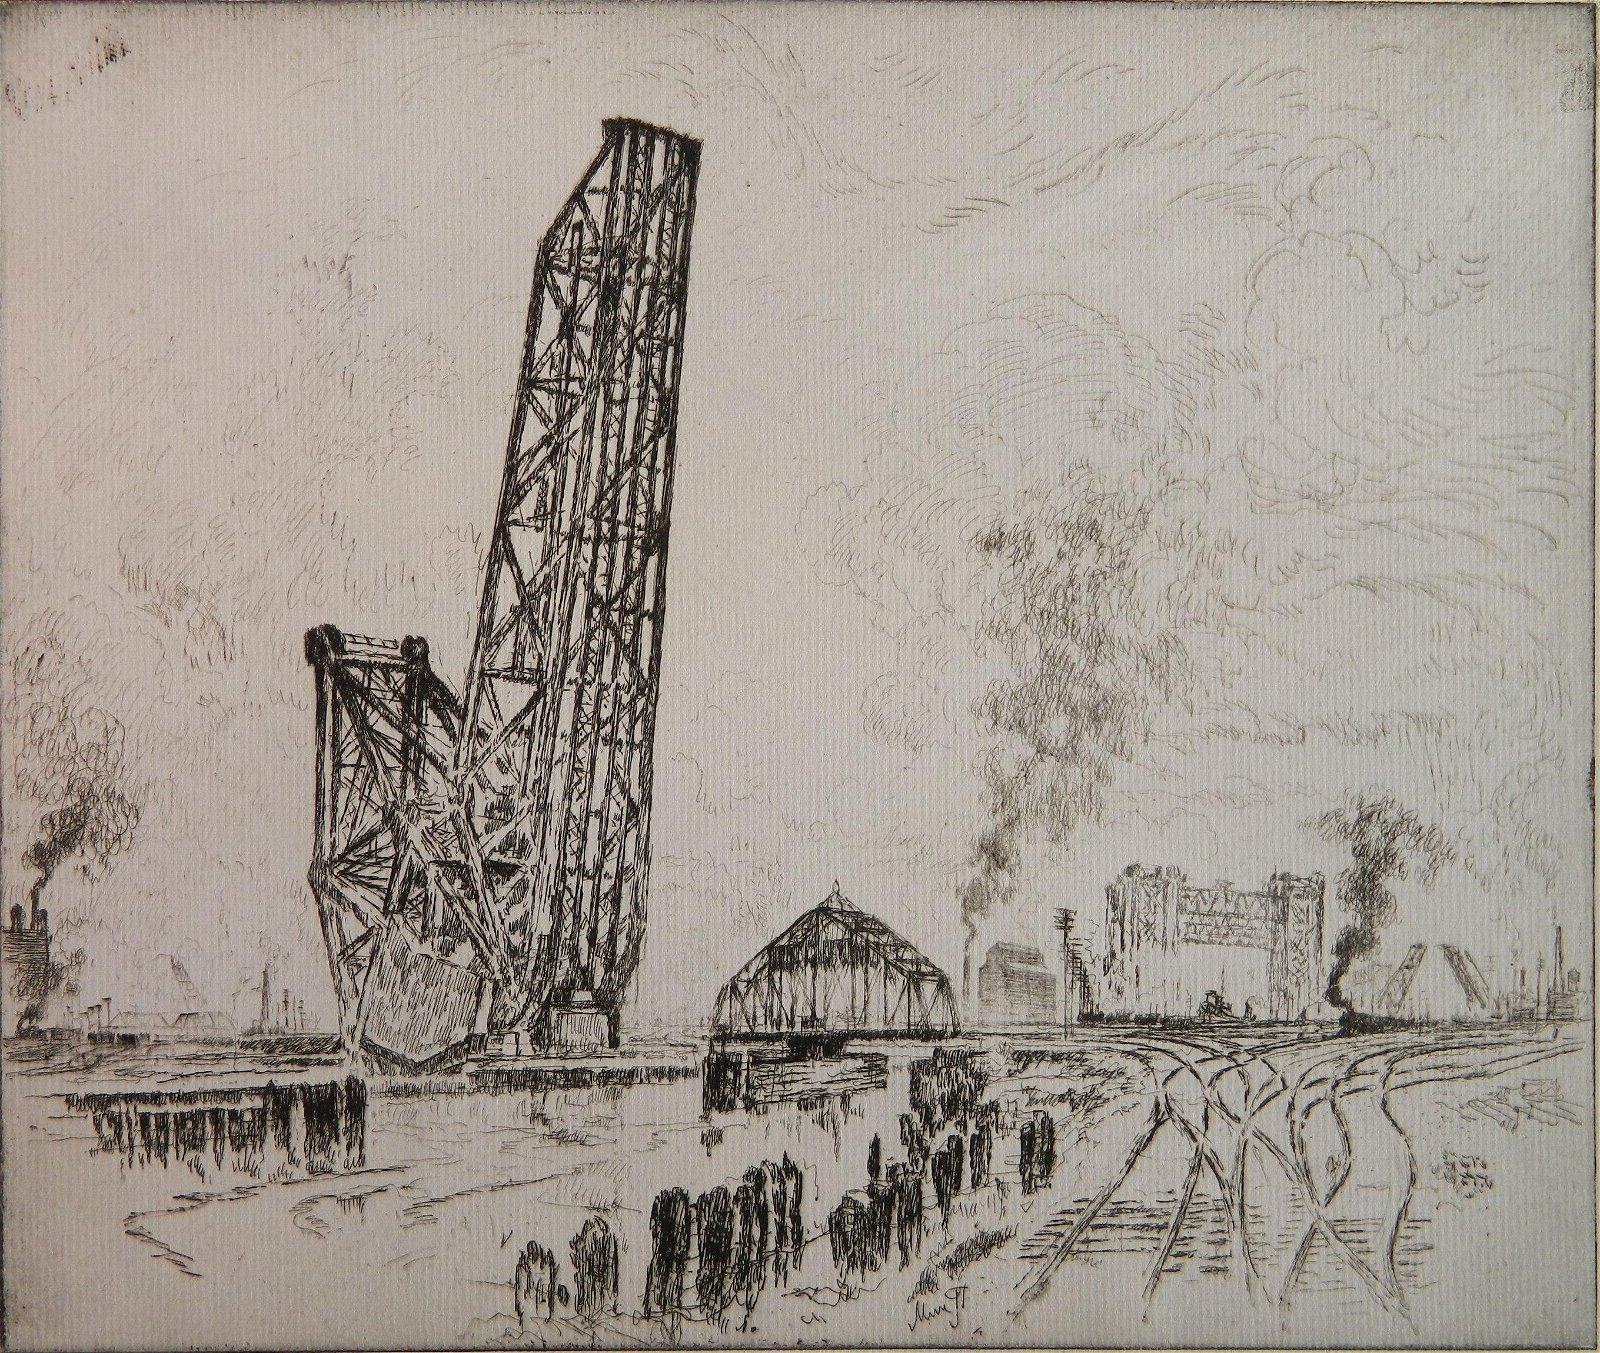 Joseph Pennell 2 etchings